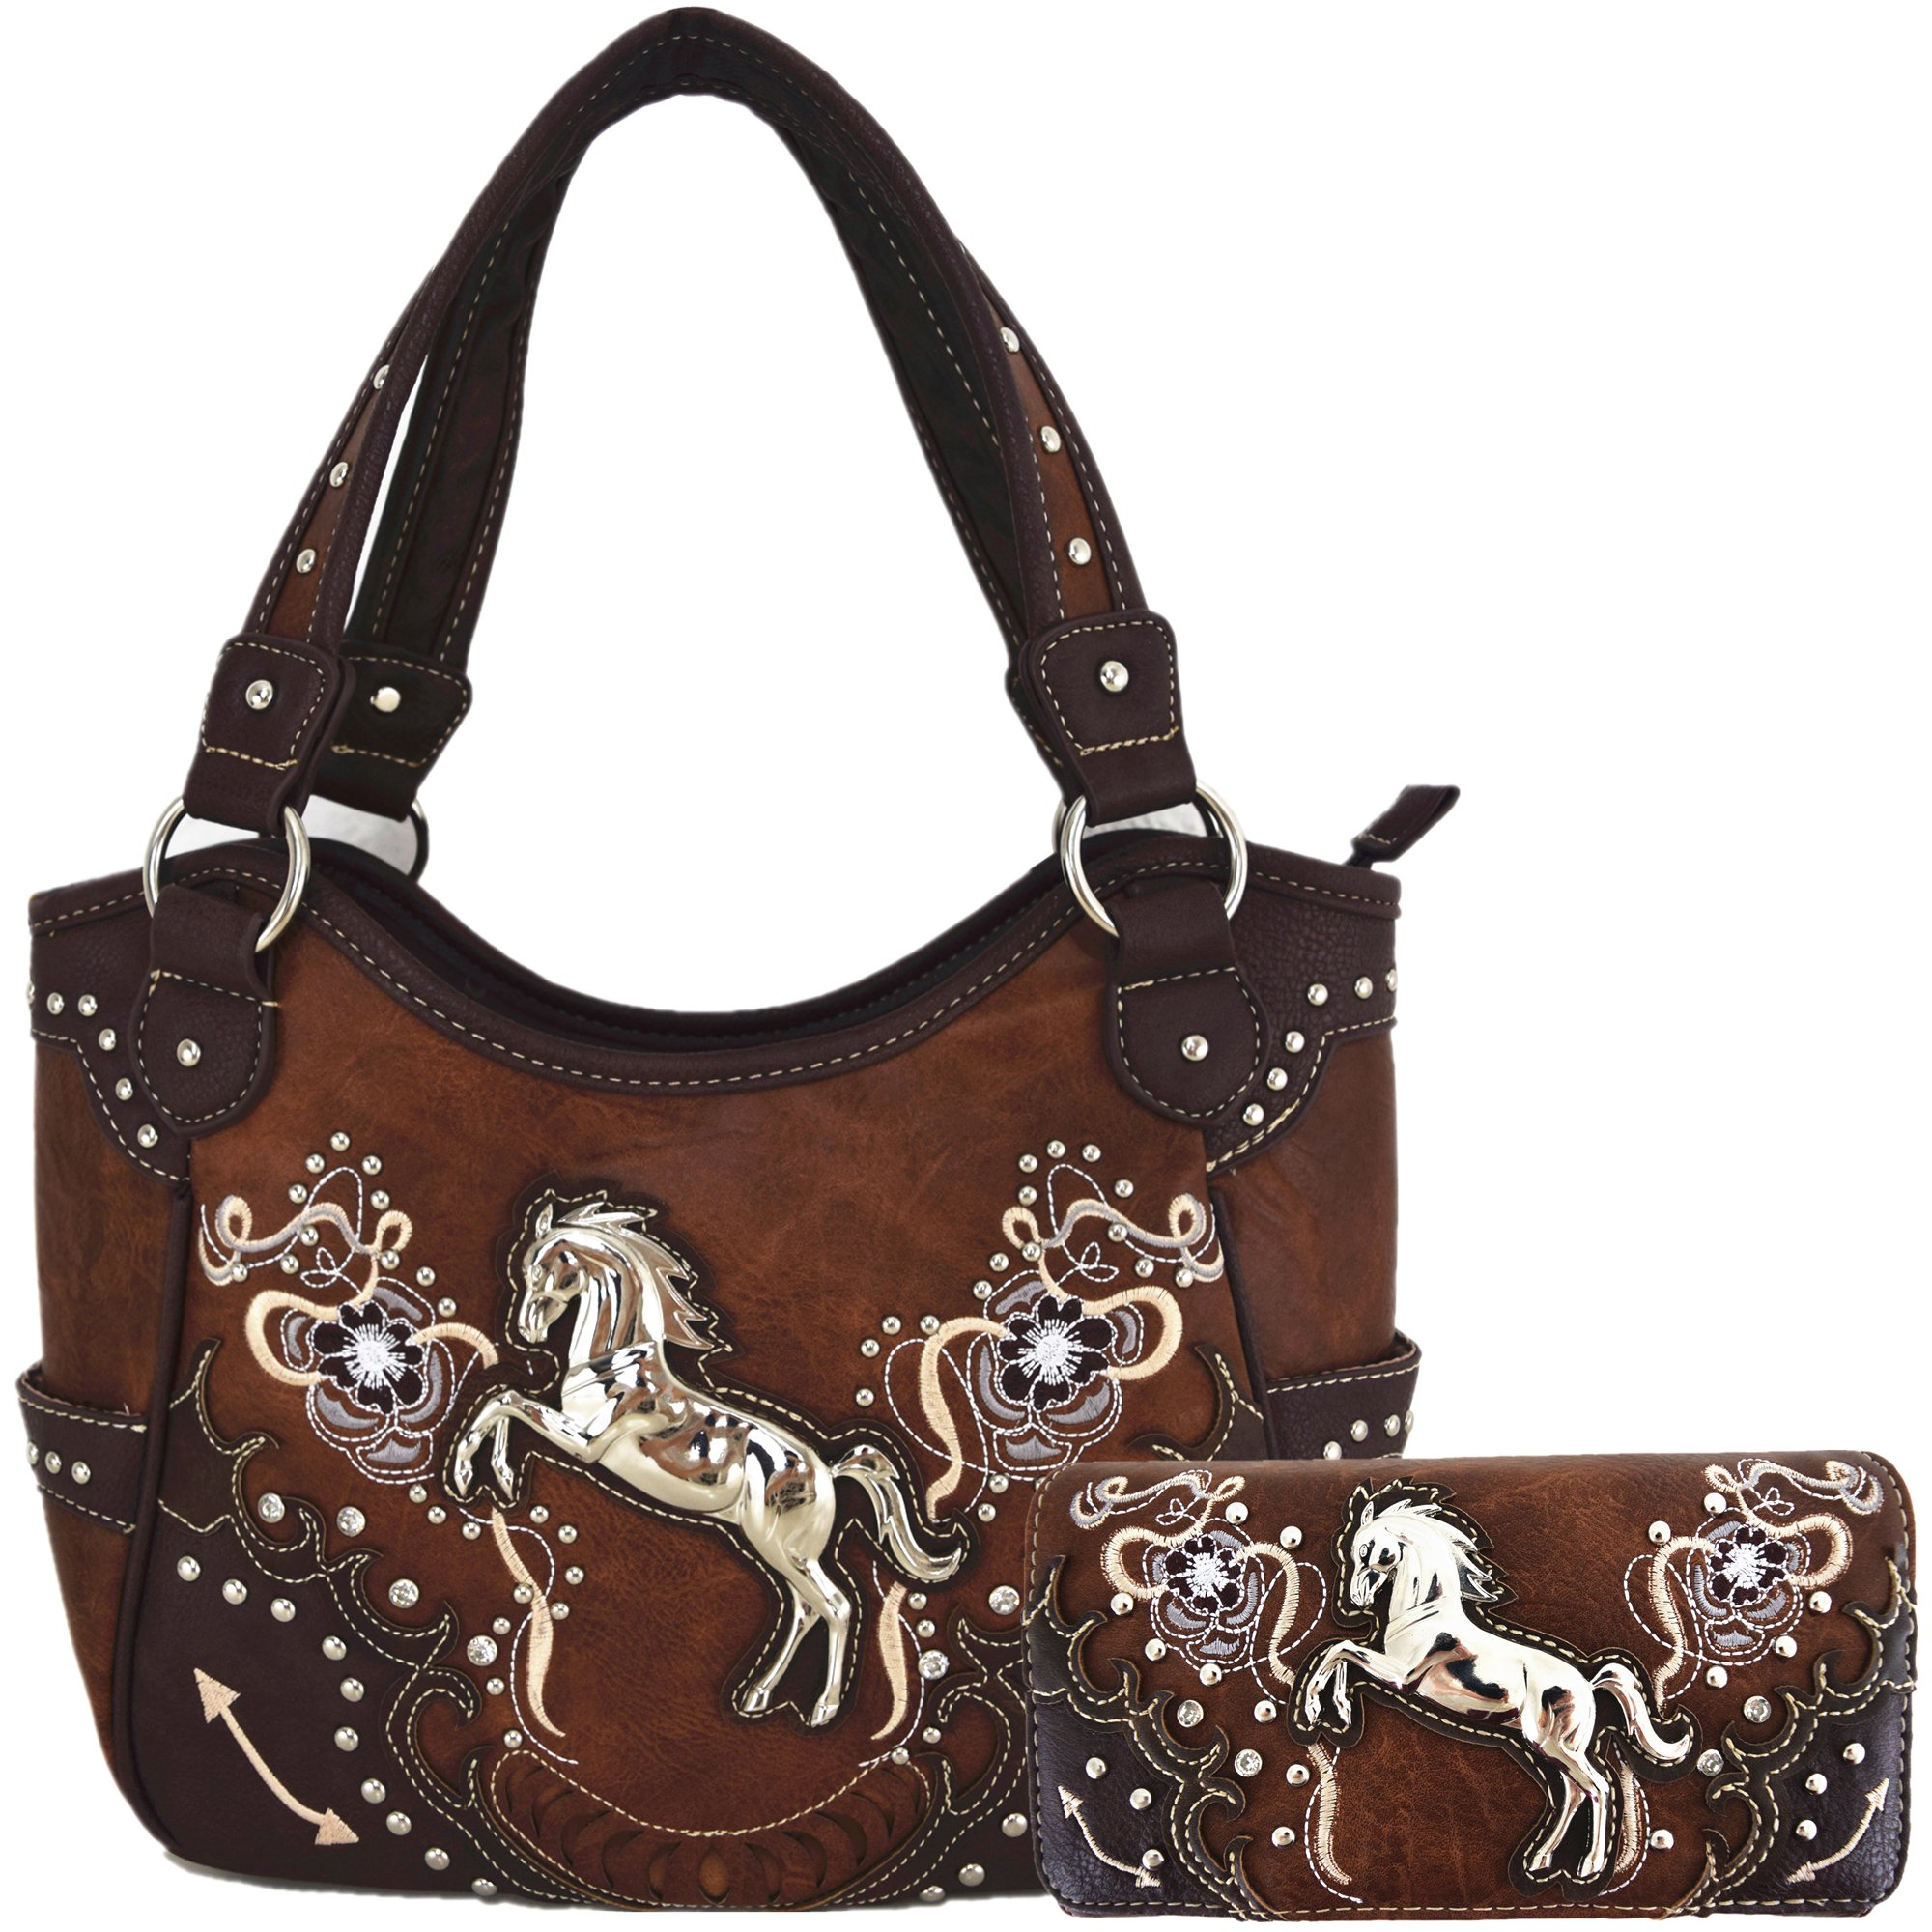 Western Style Horse Laser Cut Totes Purse Concealed Carry Handbag Women Country Shoulder Bag Wallet Set (Brown Set)